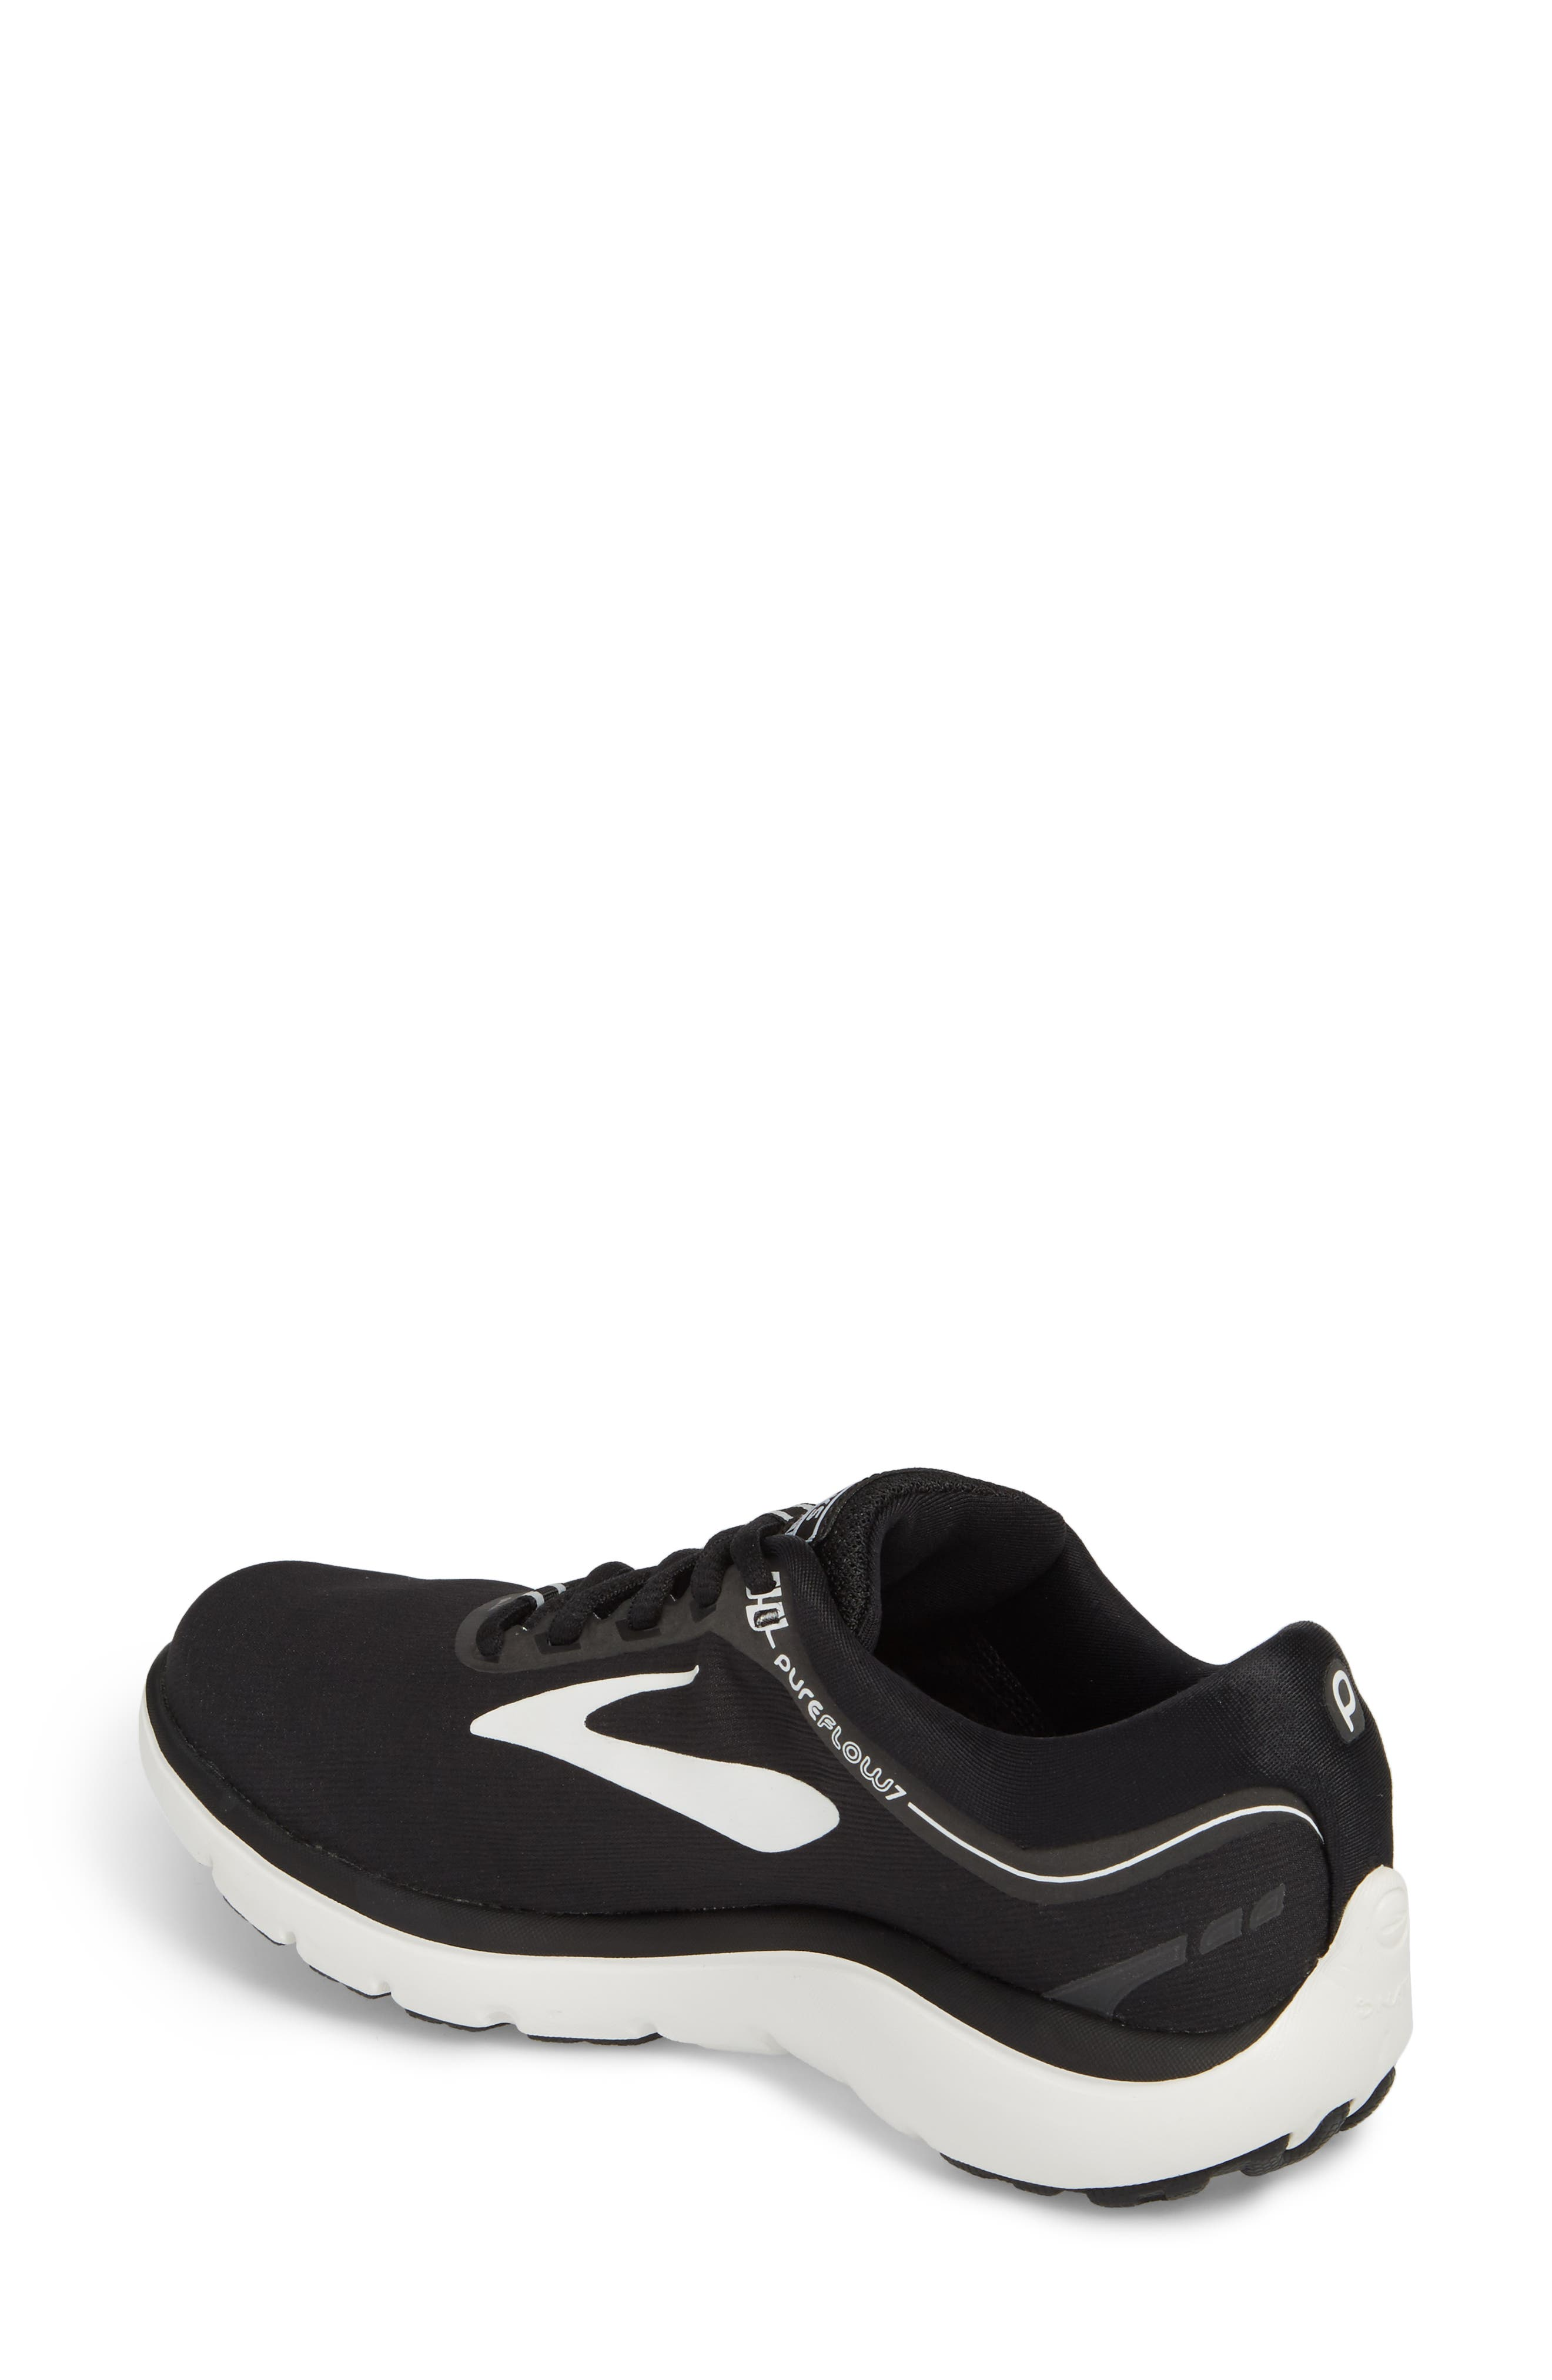 PureFlow 7 Running Shoe,                             Alternate thumbnail 2, color,                             BLACK/ WHITE